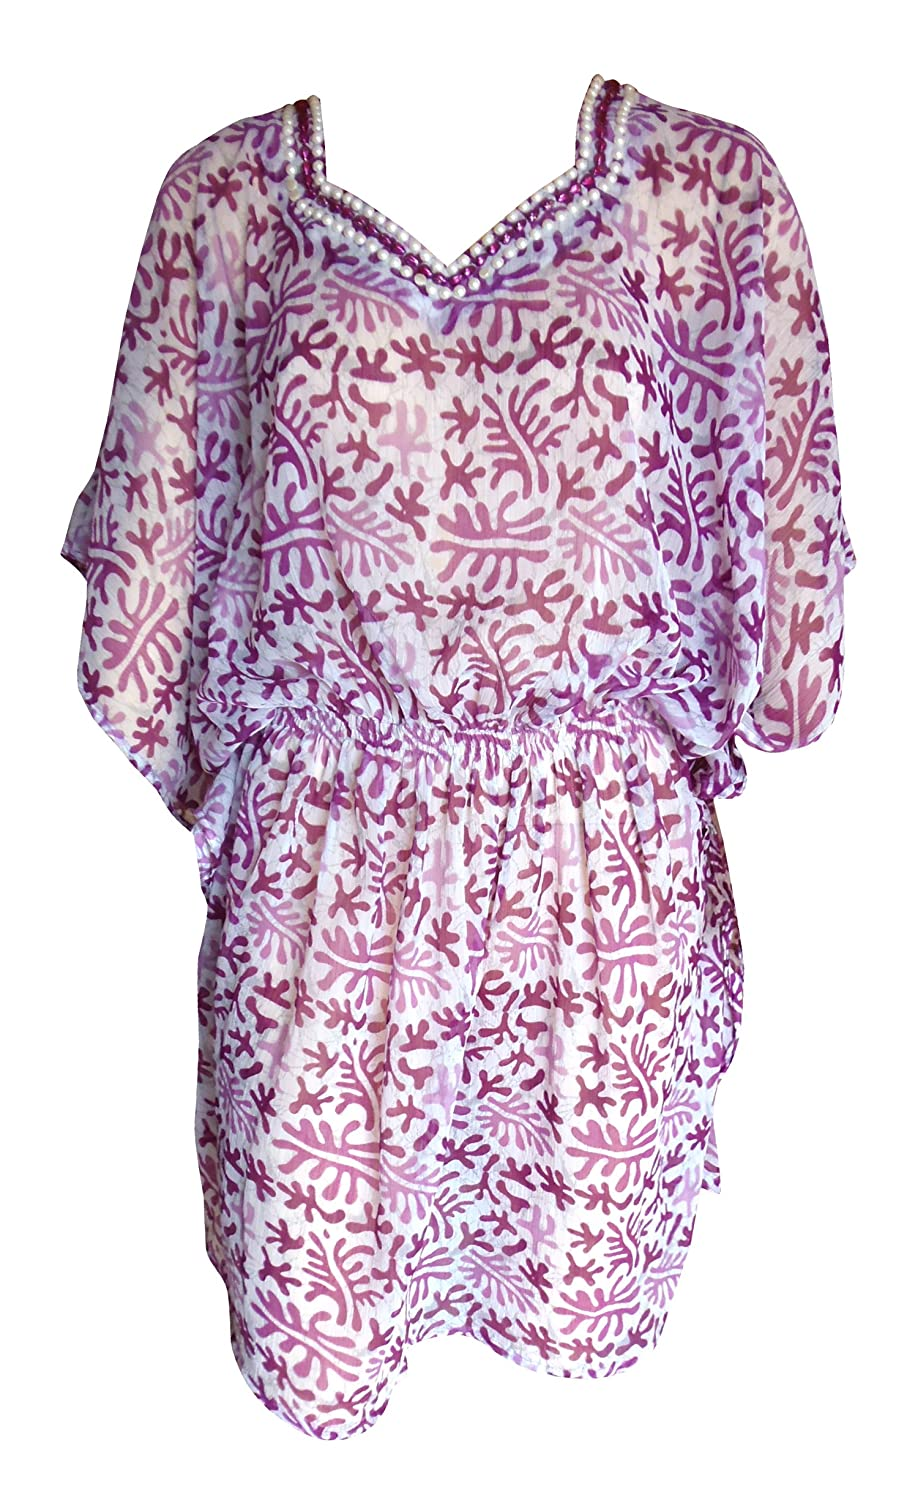 SUNROSE Purple Printed Hand Work Sheer Plus size Tube Kaftan Caftan Beach Cov...